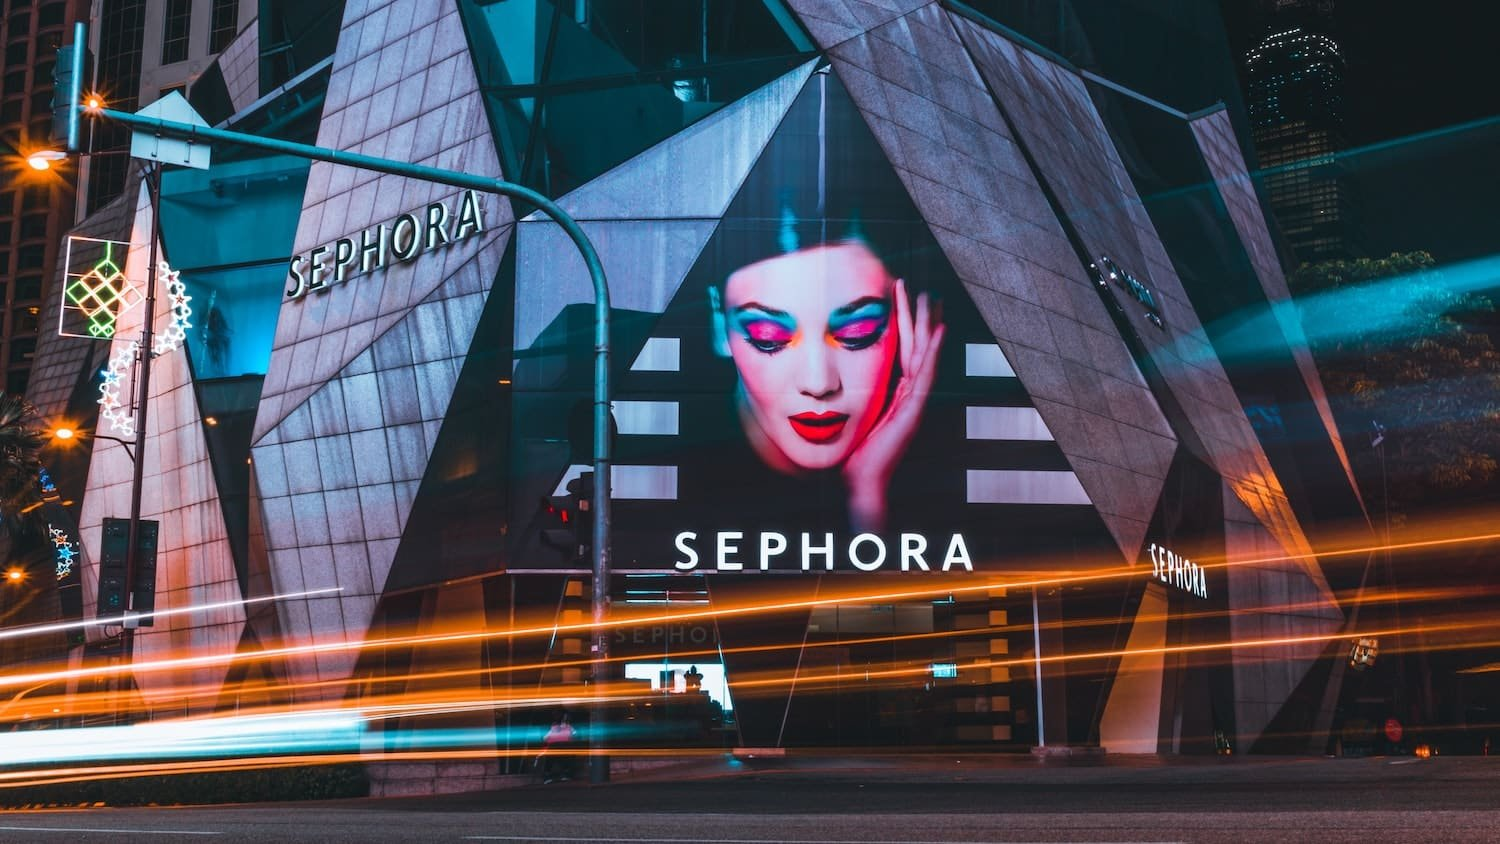 where cosmetic products sold ulta sephora